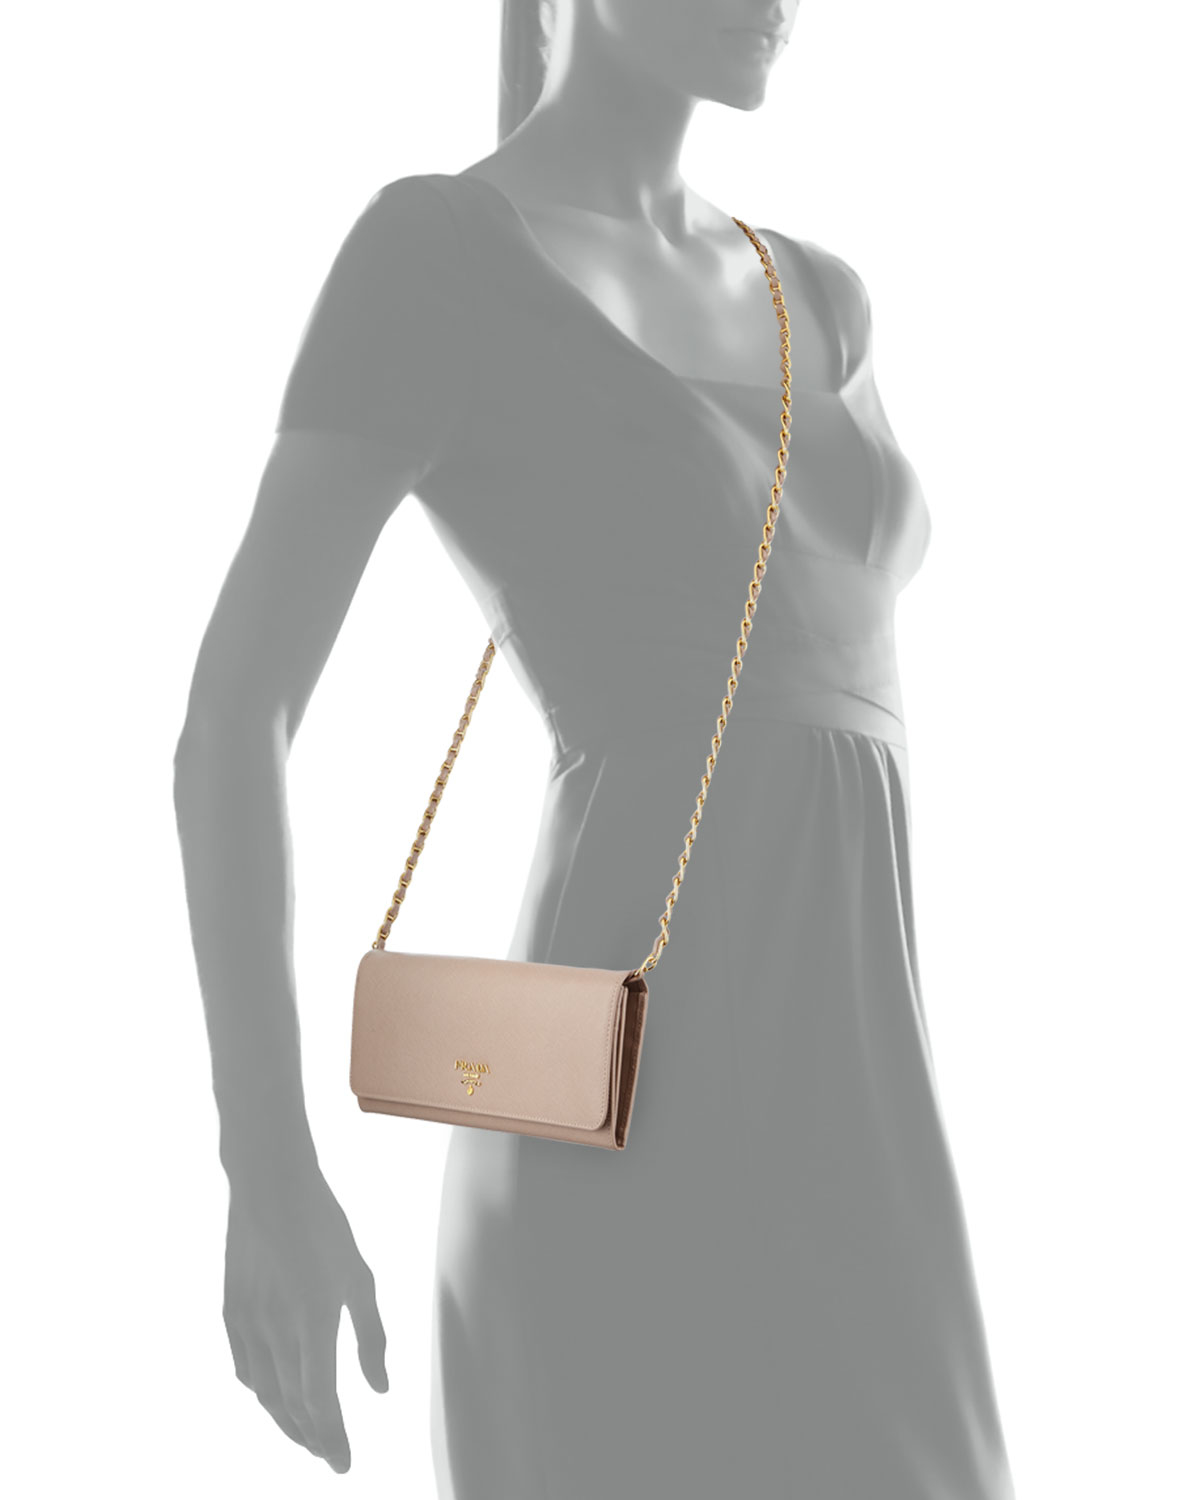 f4dc266031aa ... reduced lyst prada saffiano leather wallet on chain bag in natural  d1843 1a140 ...